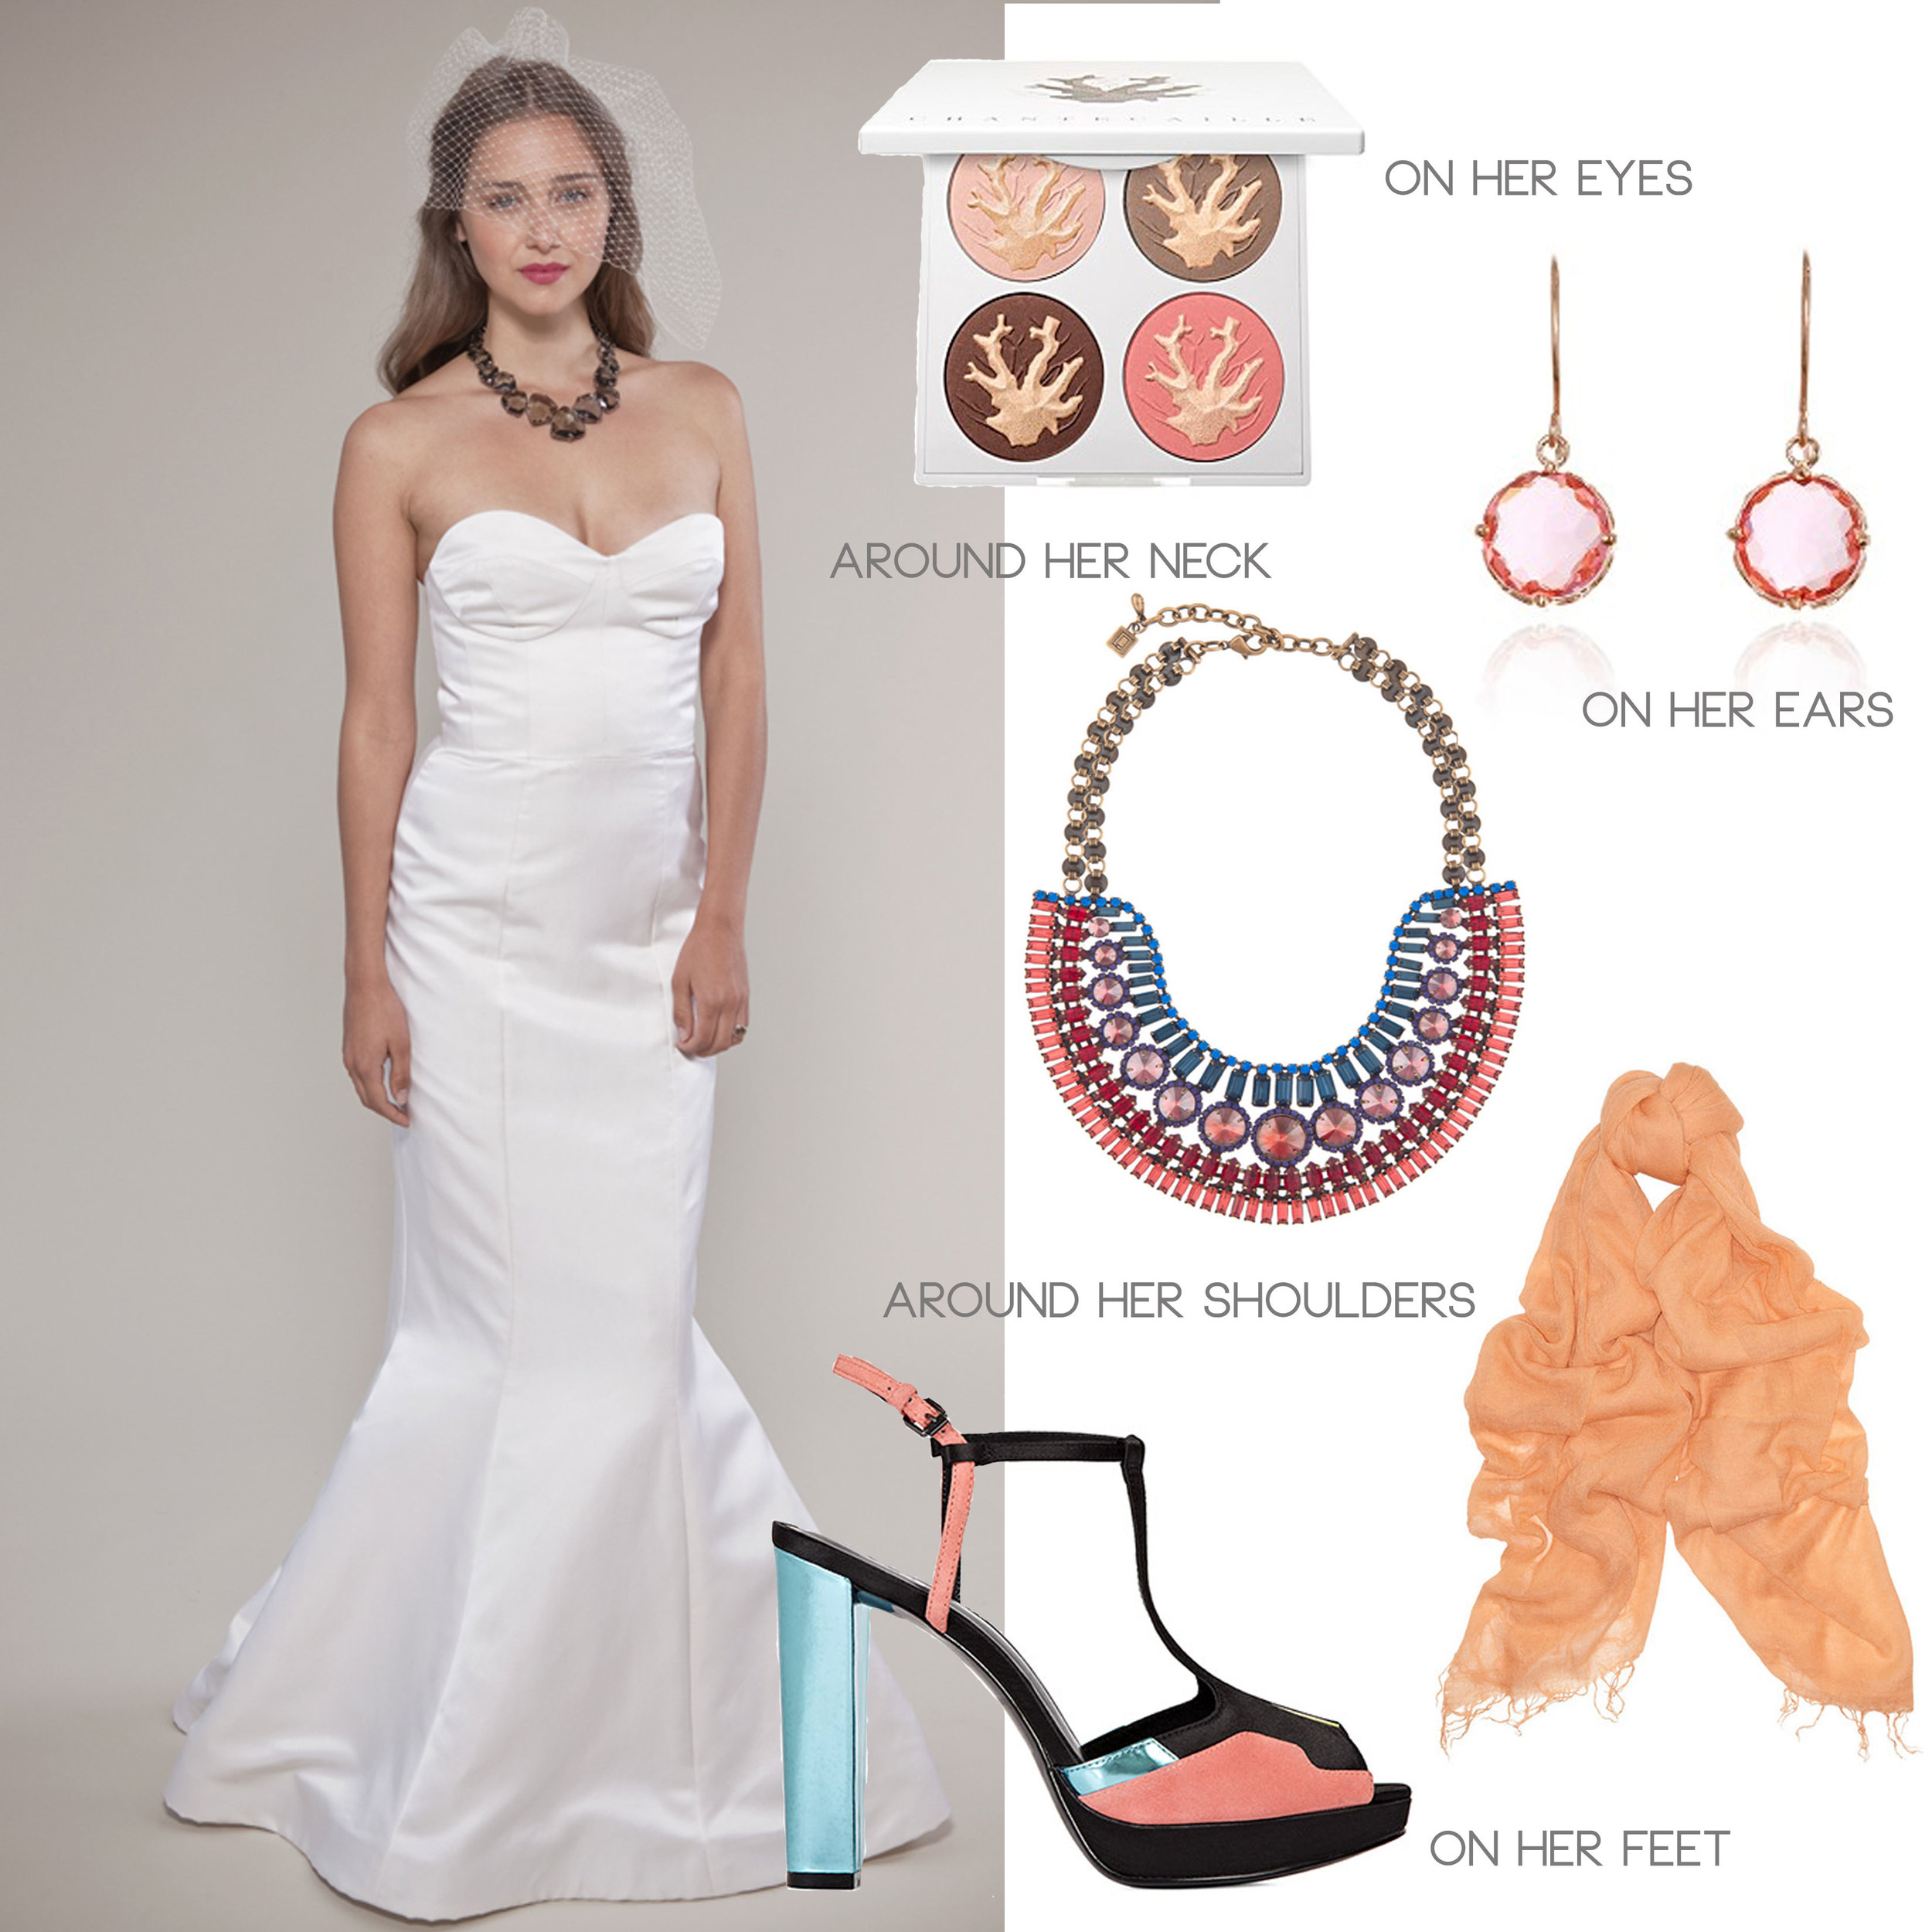 Bridal, Style, Fashion, Makeup, Beauty, Wedding Gown